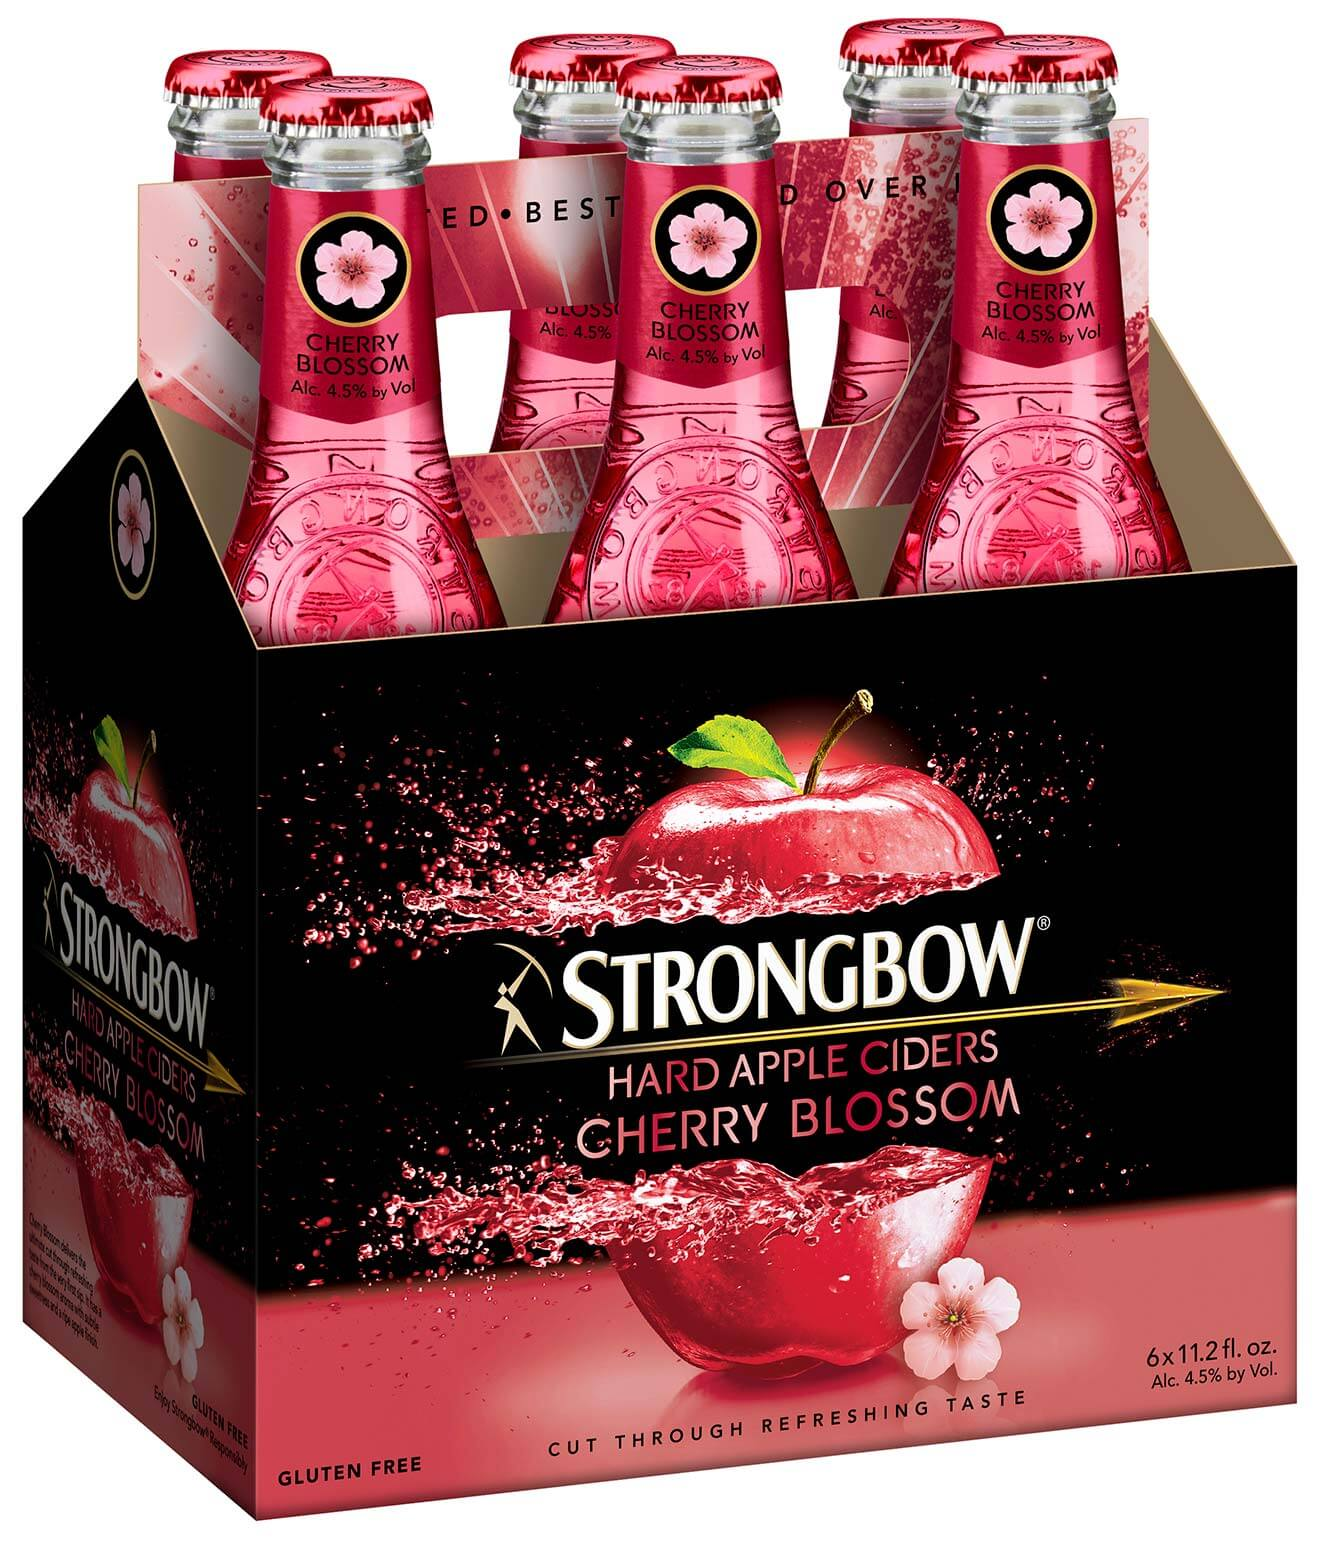 Strongbow Cherry Blossom Hard Cider, 6-pack, industry news